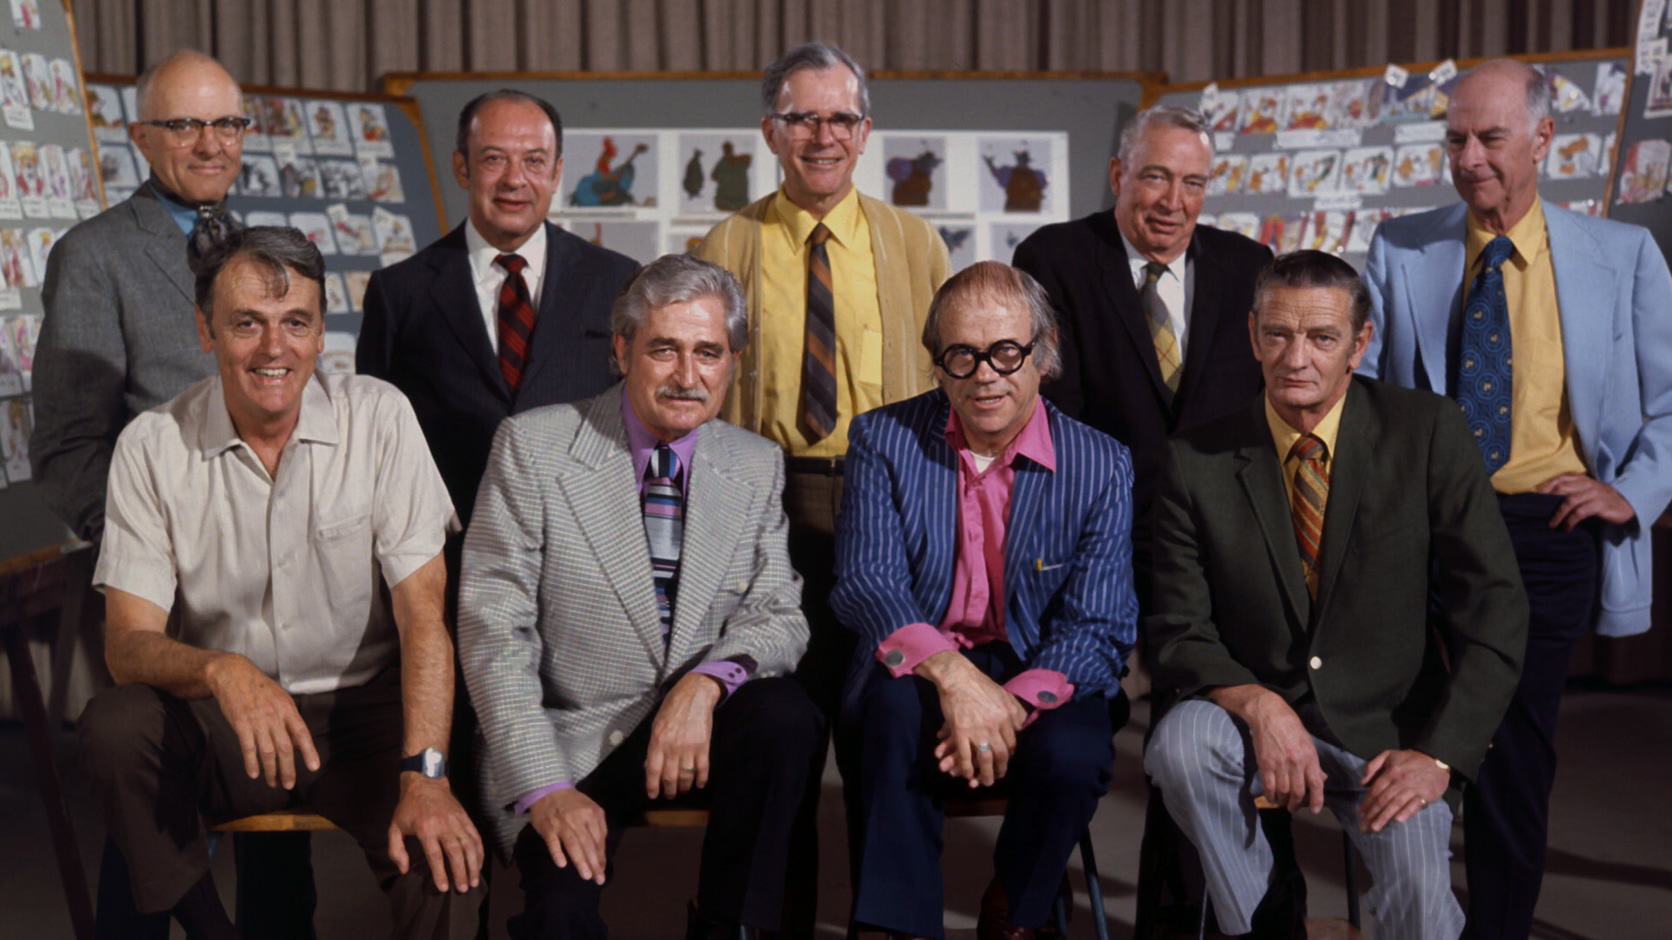 Disney's Nine Old Men